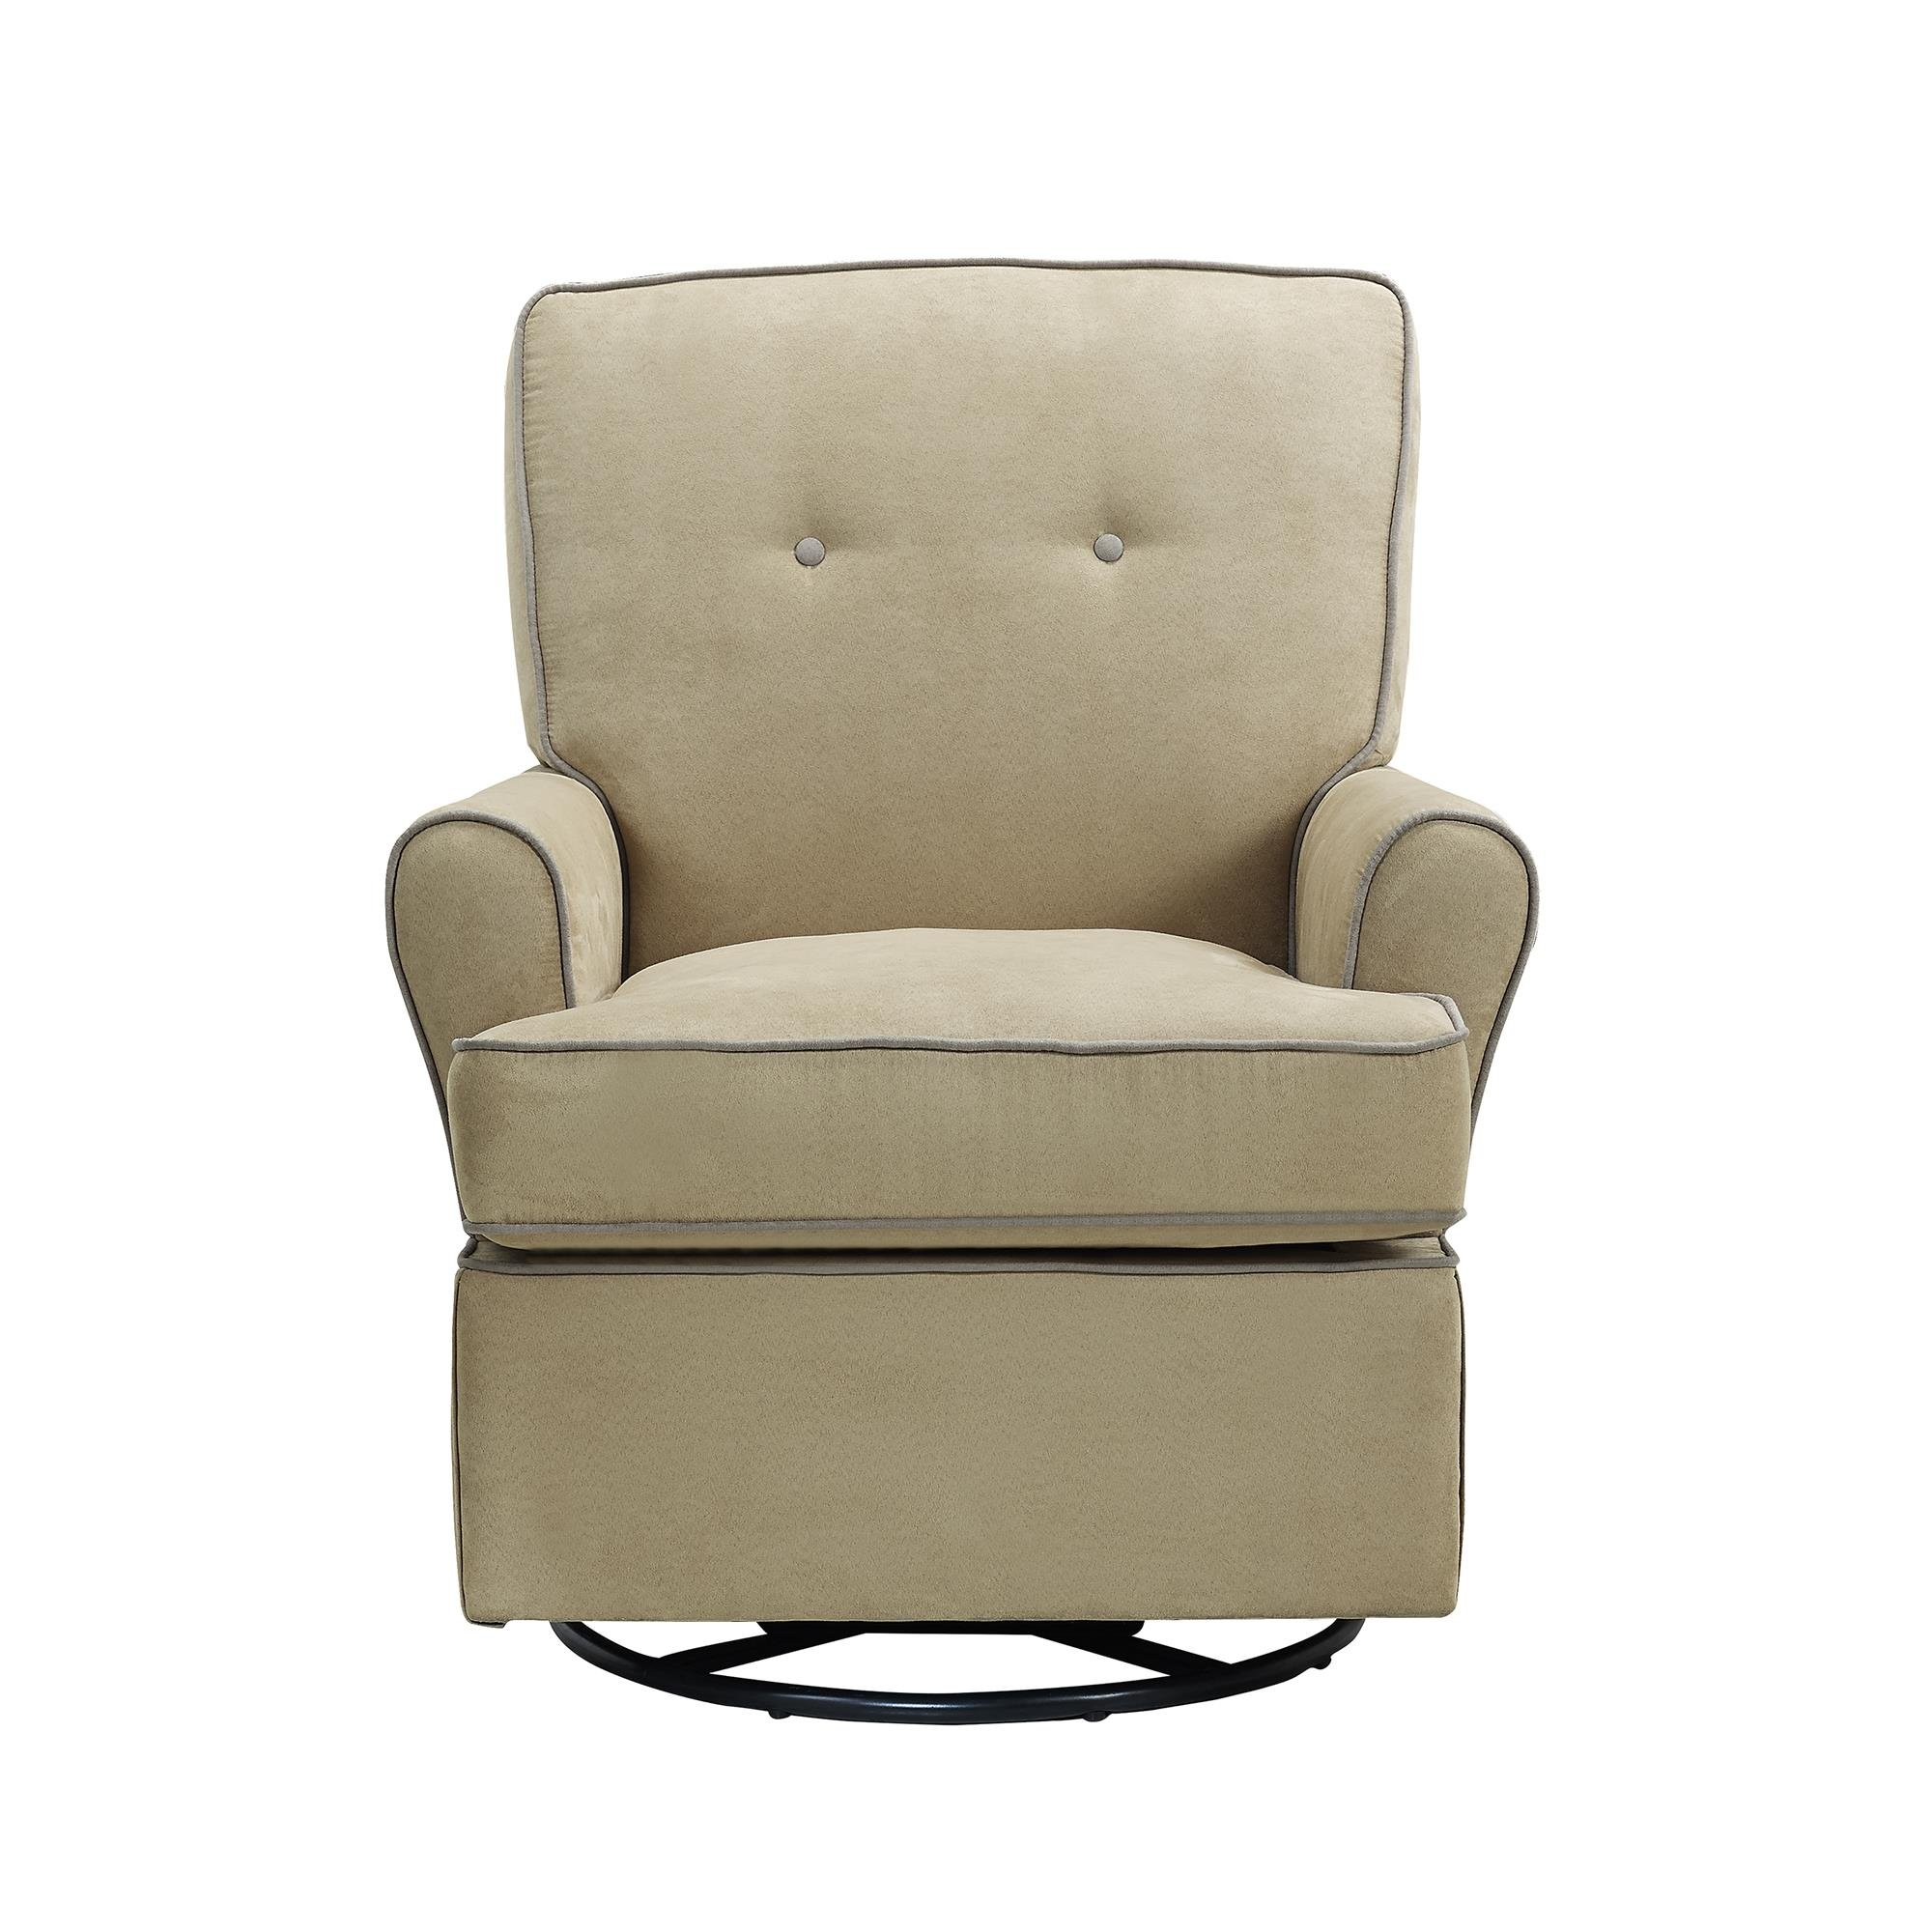 Baby Relax The Tinsley Nursery Swivel Glider Chair, Beige by Baby Relax